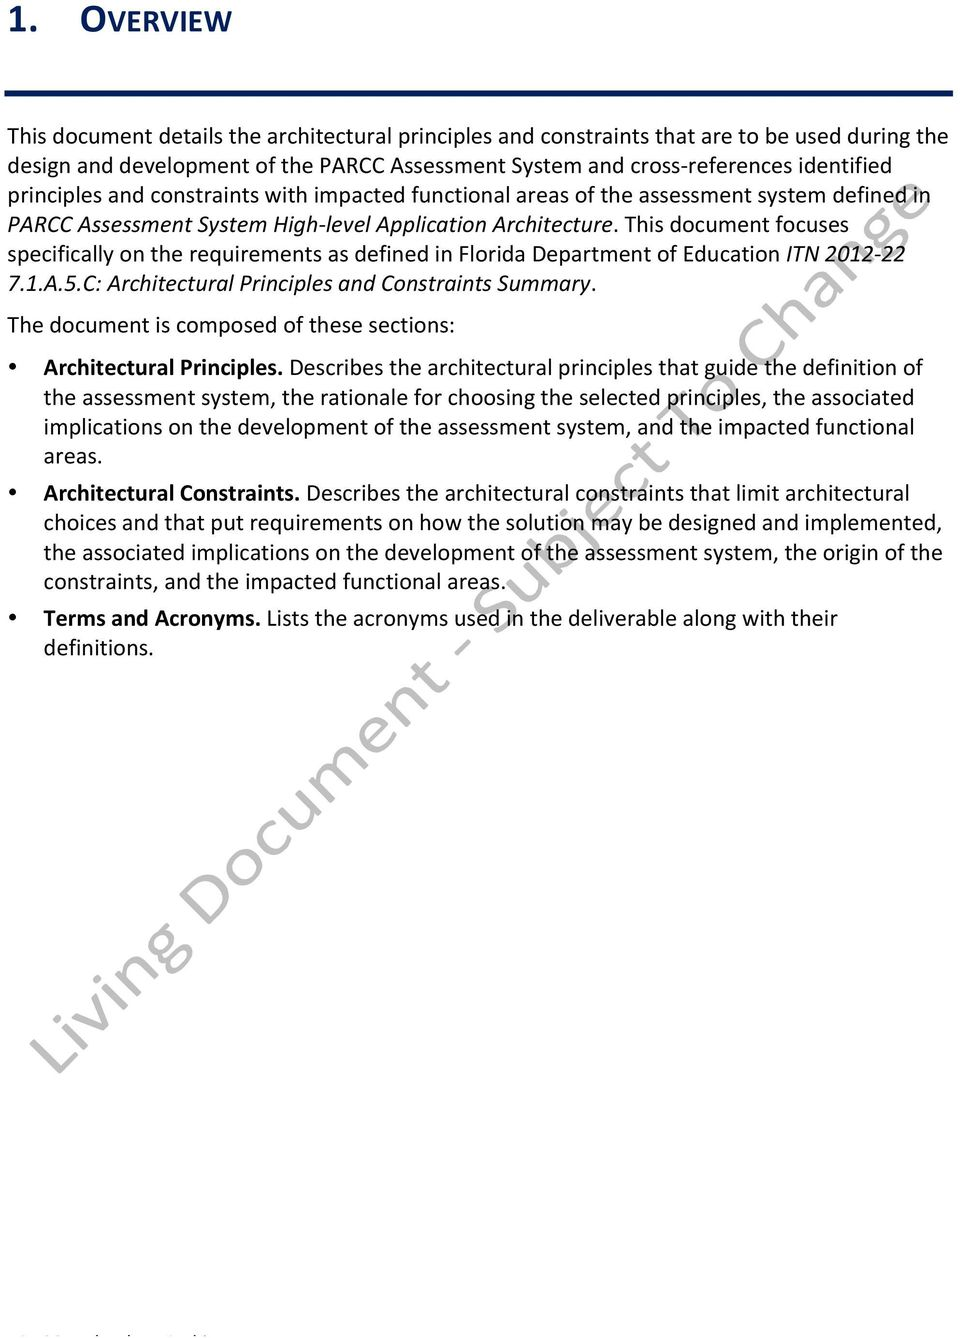 This document focuses specifically on the requirements as defined in Florida Department of Education ITN 2012-22 7.1.A.5.C: Architectural Principles and Constraints Summary.